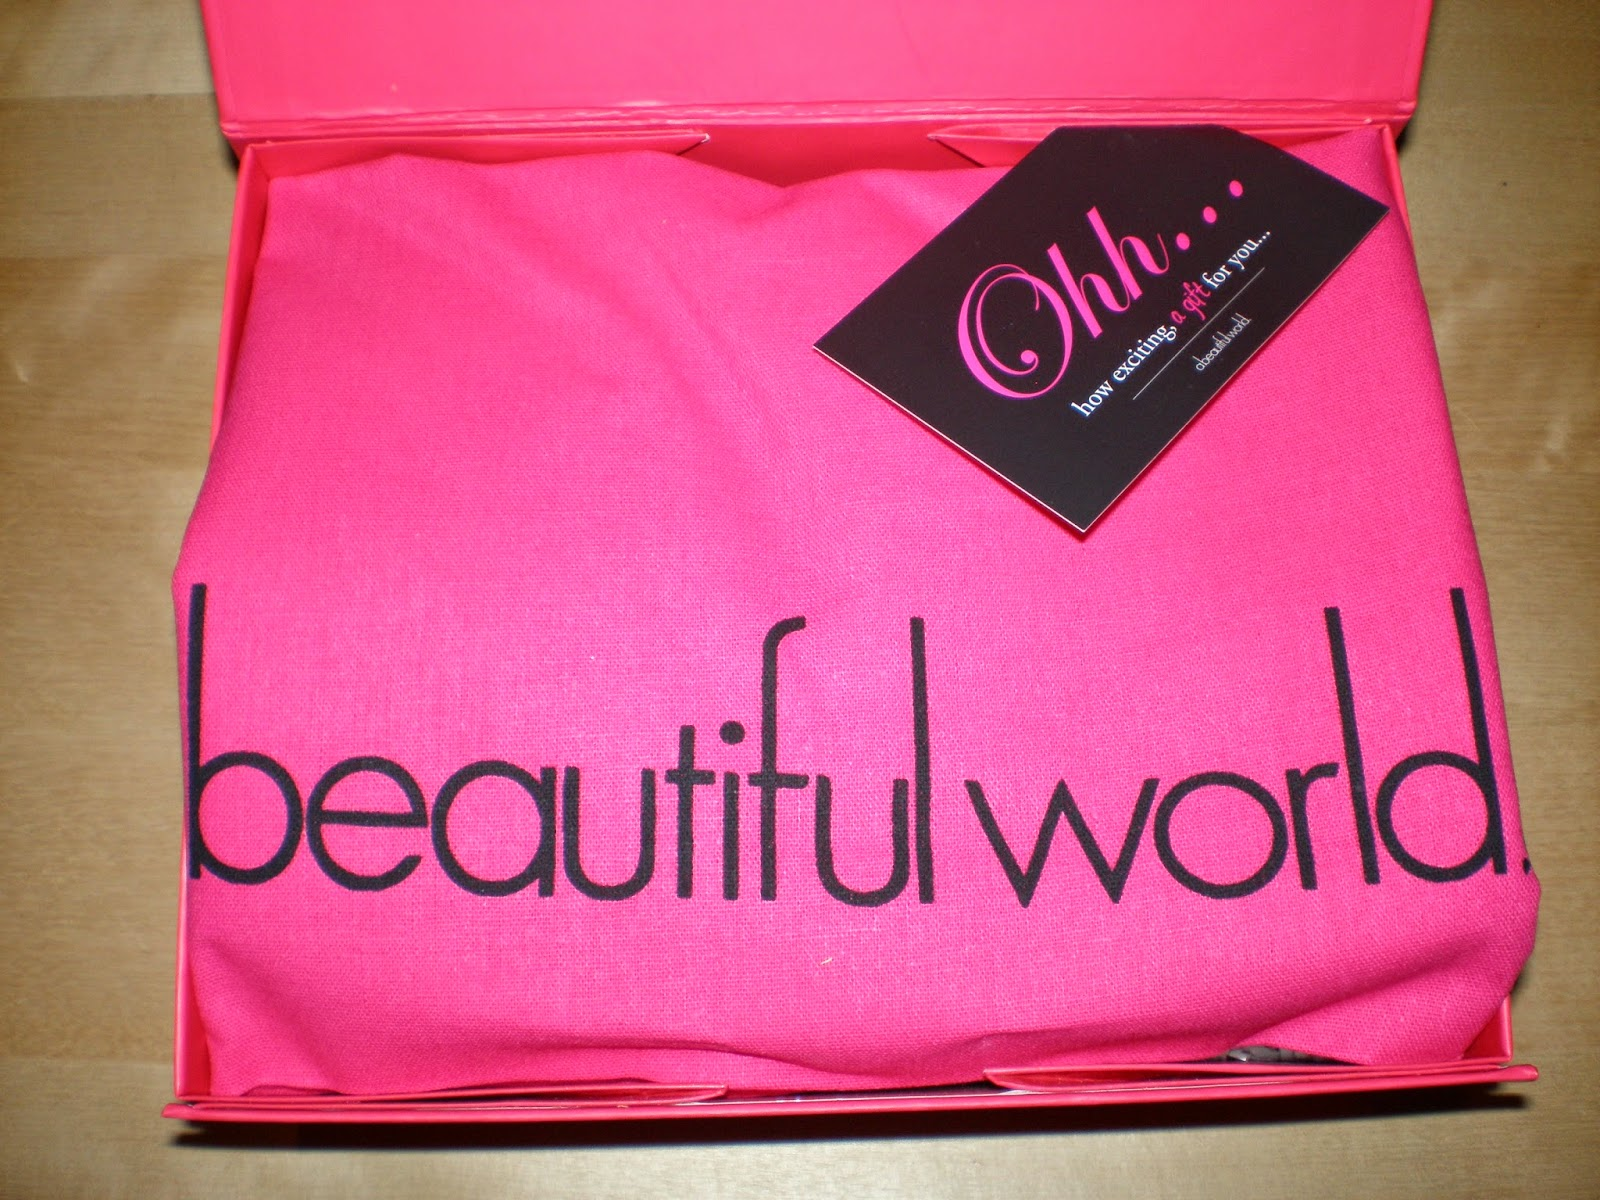 Unboxing Abeautiful world beauty box